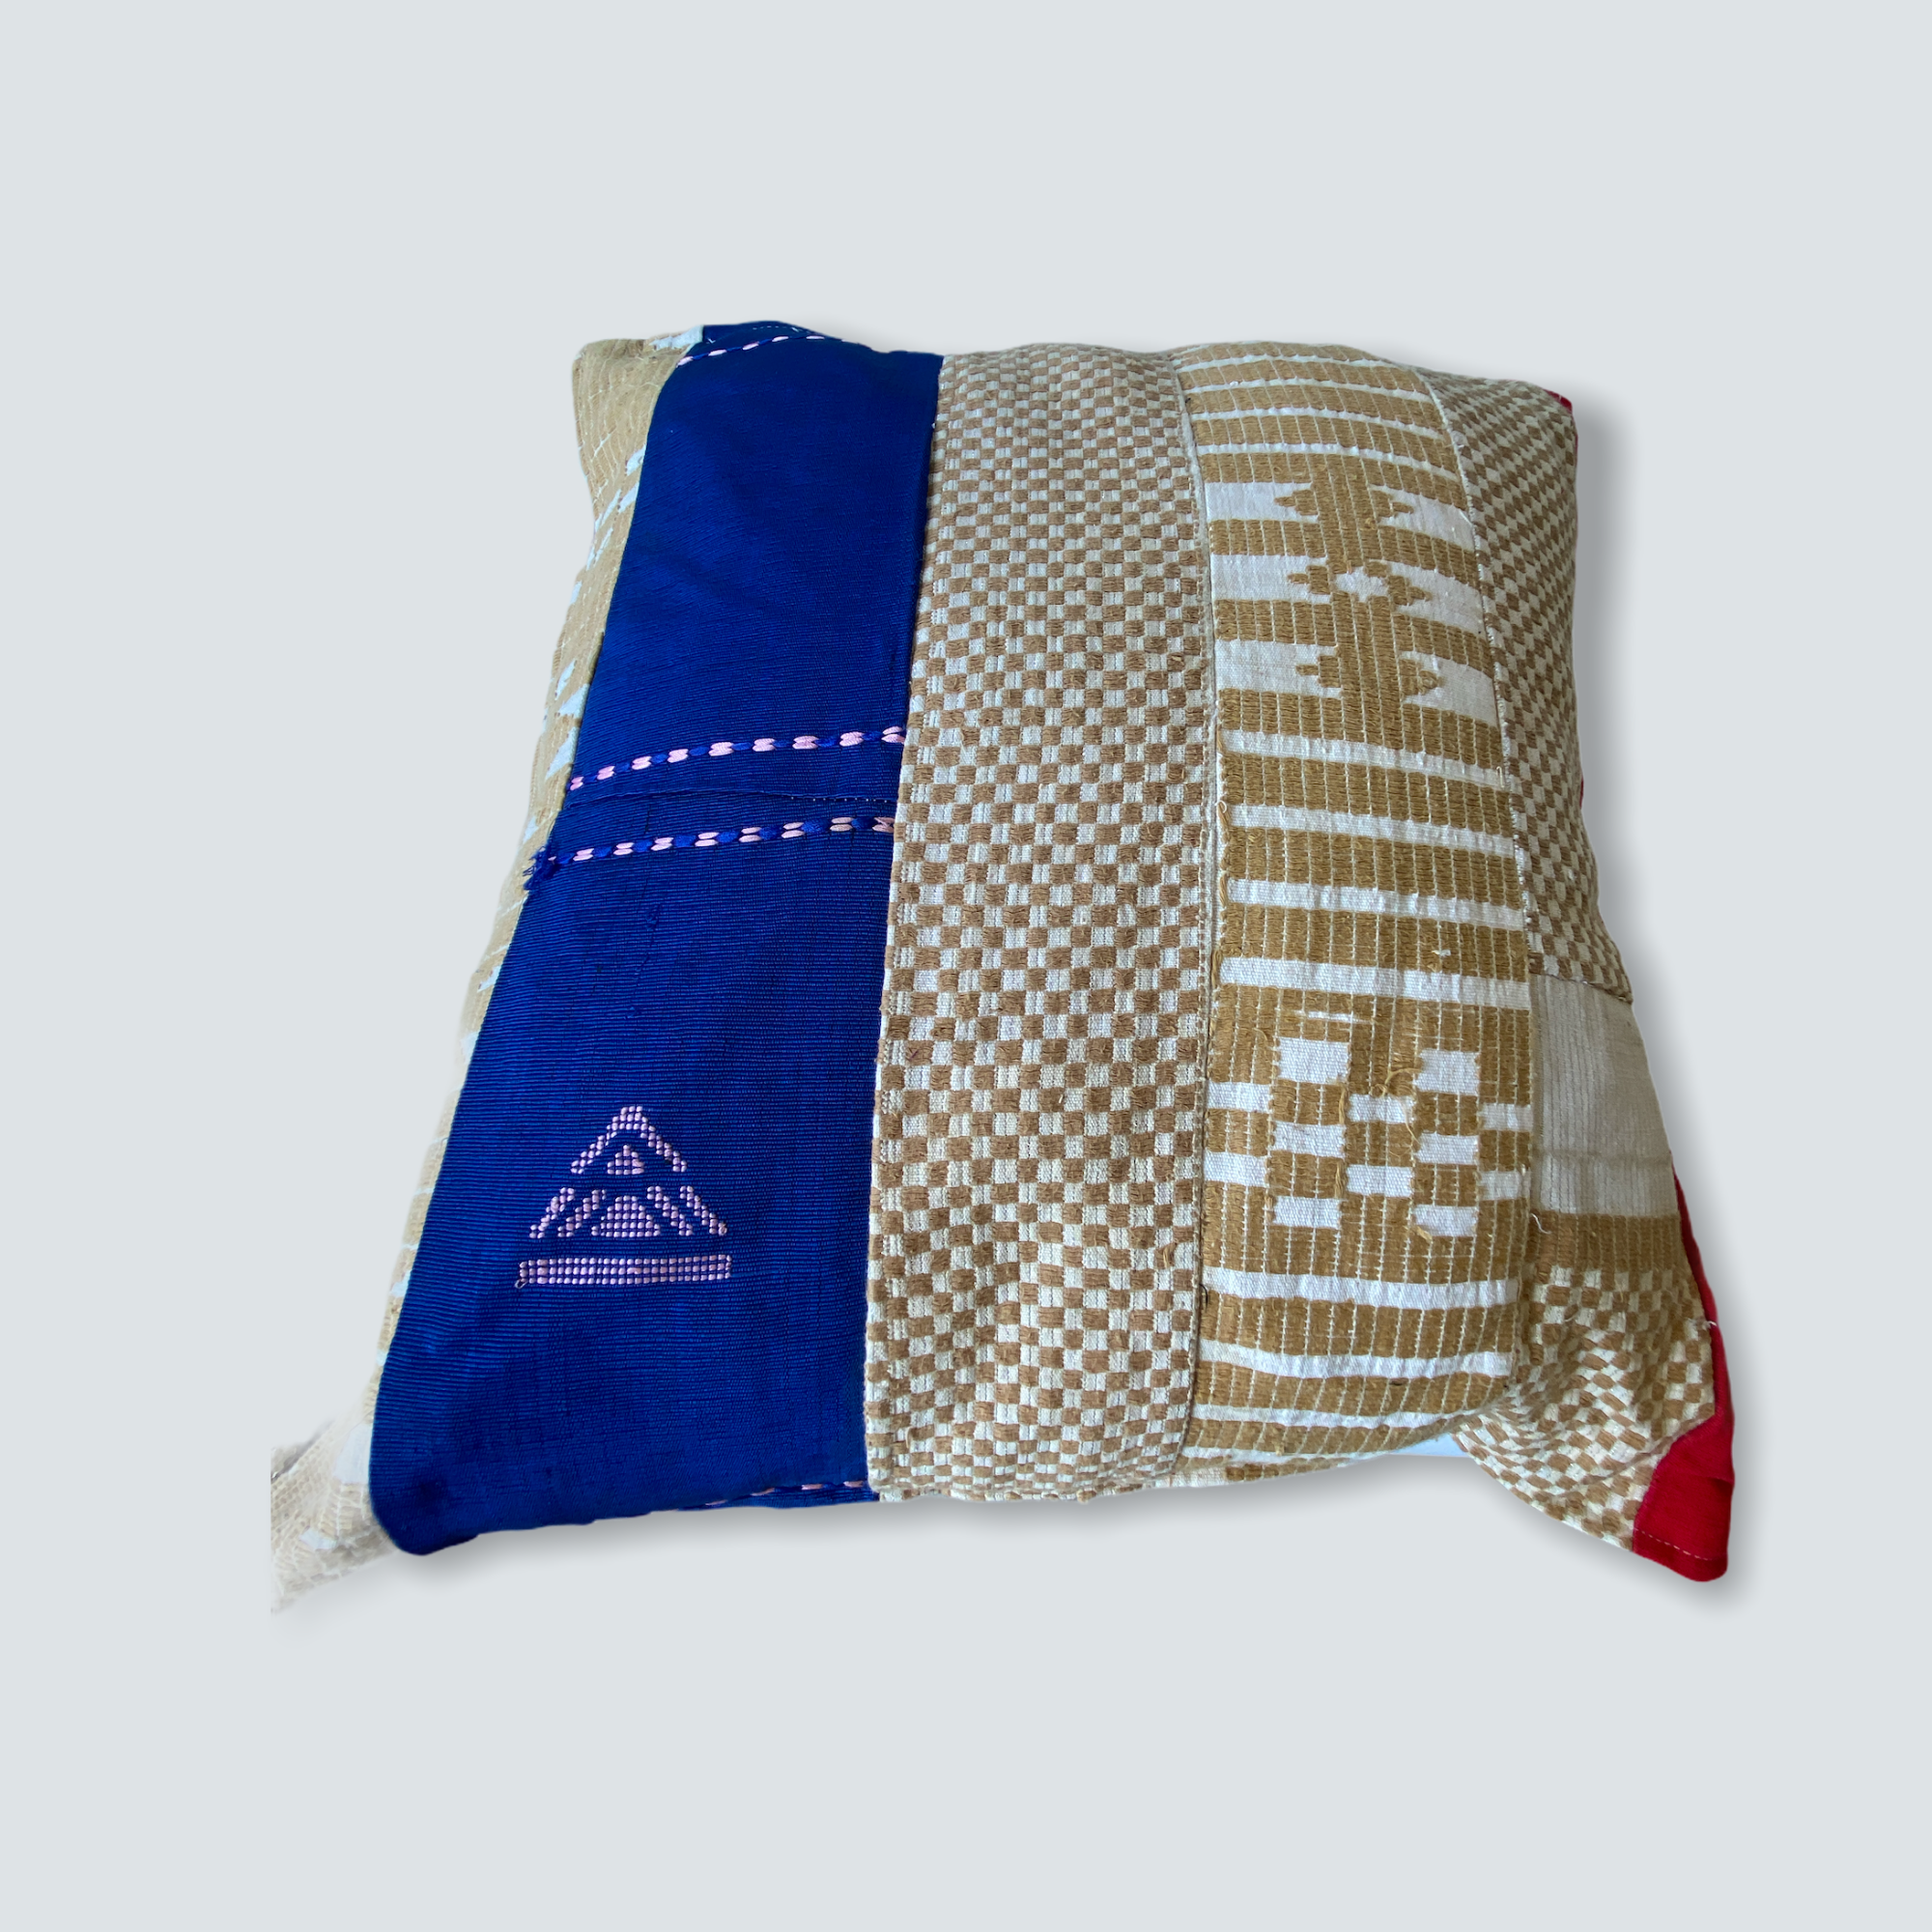 NUPE cloth cushion - Nigeria 50x50